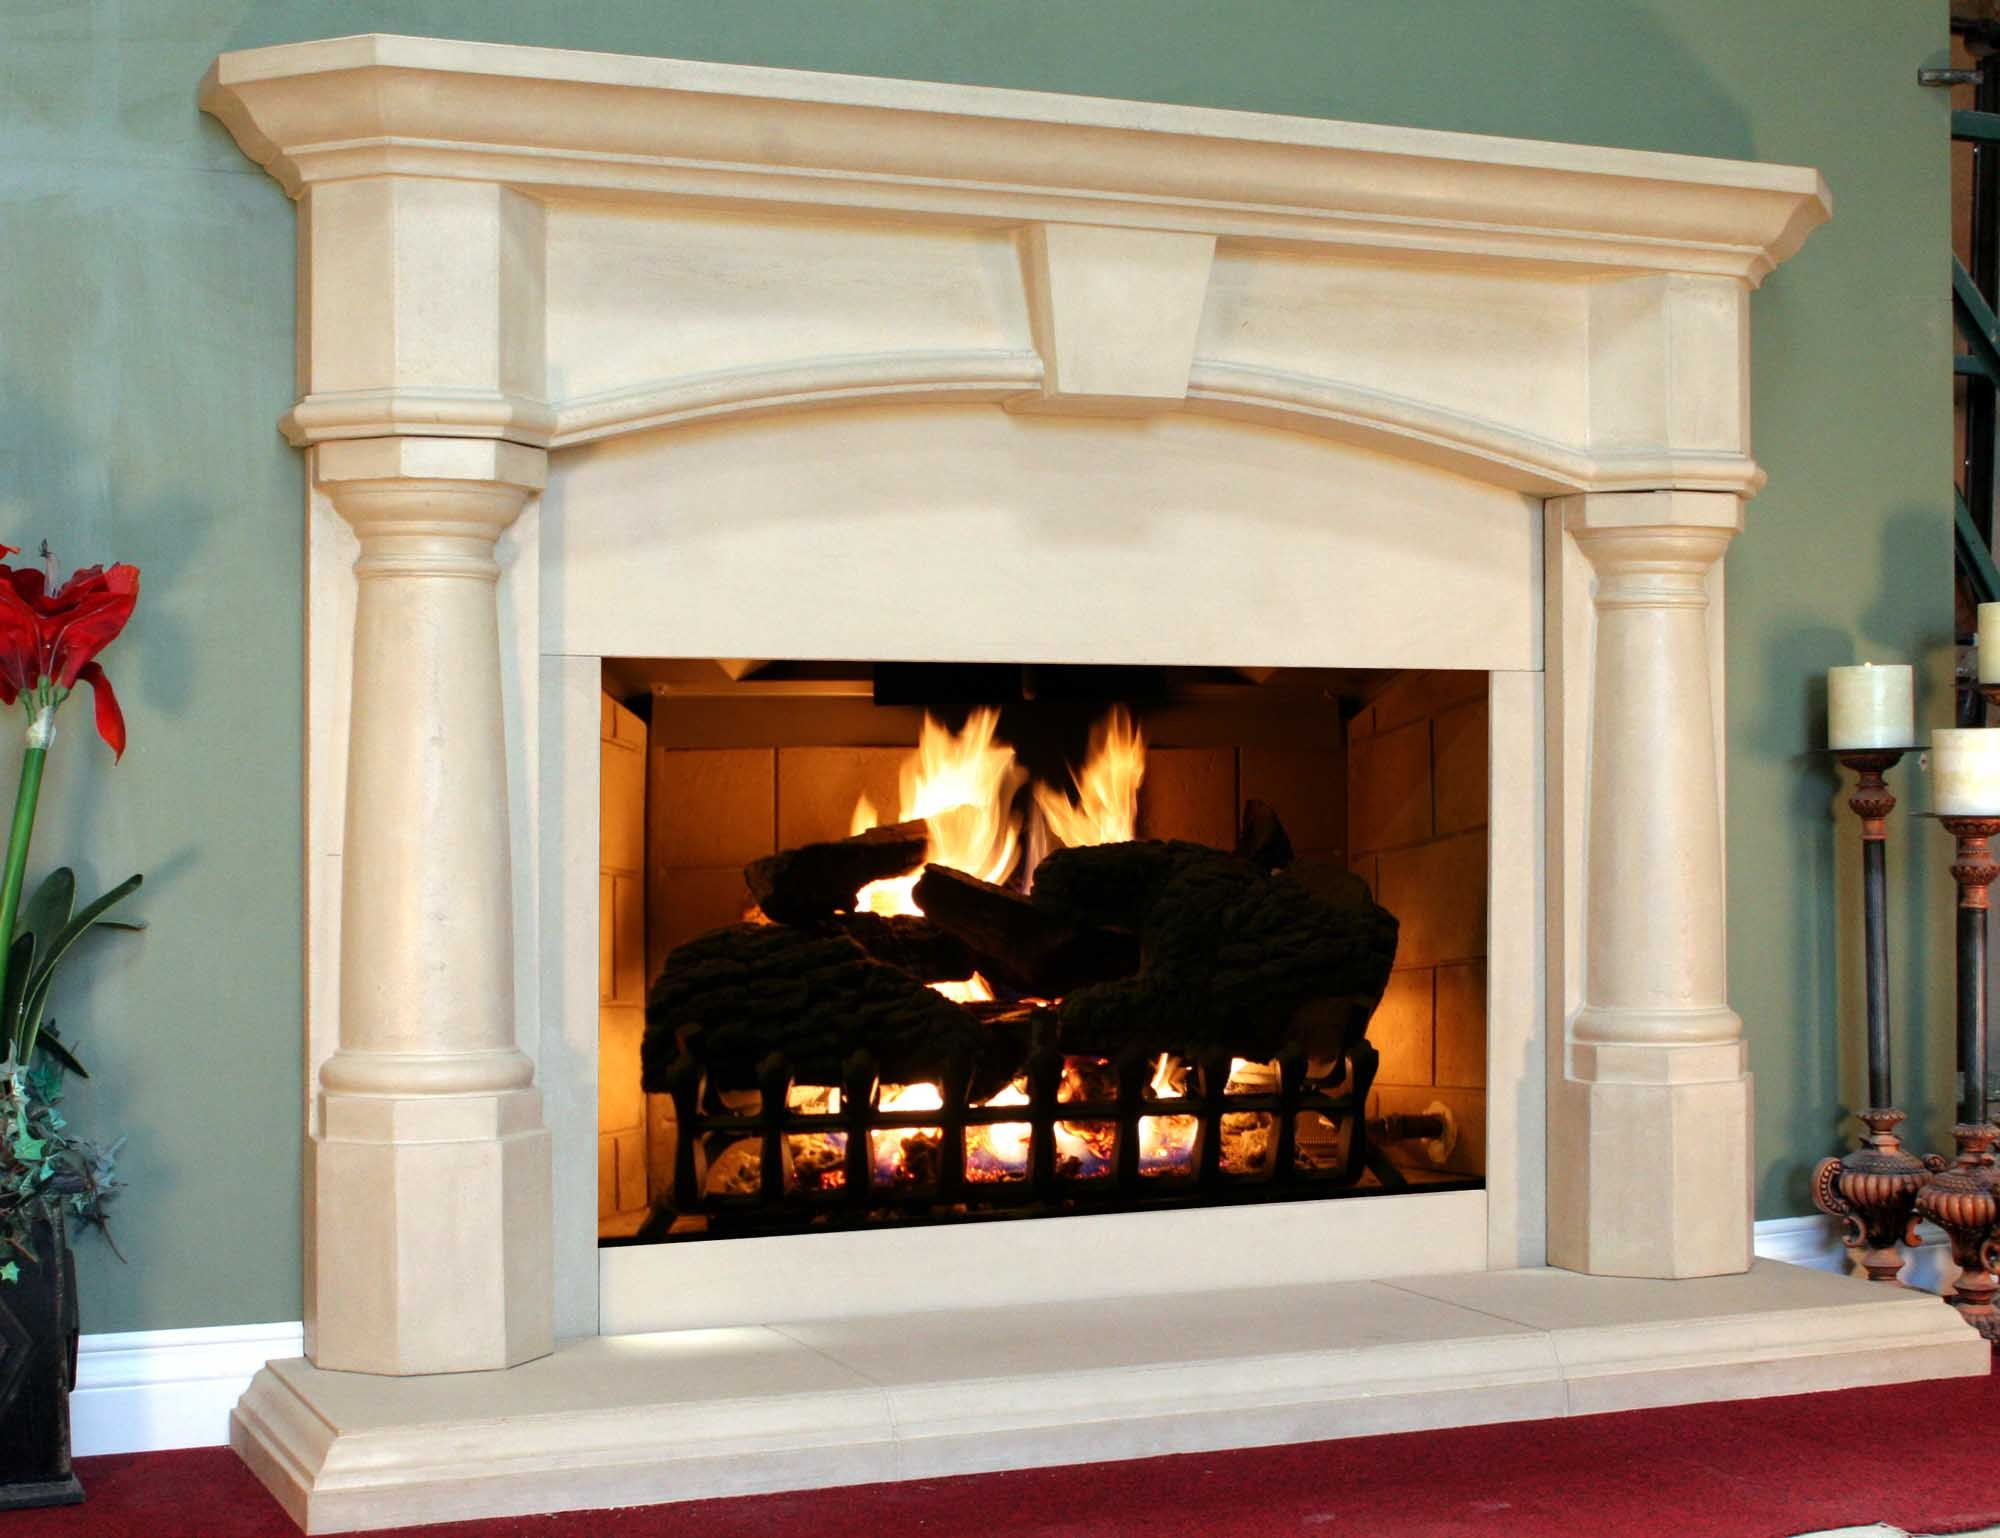 Ahhh I Love Fireplaces Home Decor Pinterest Fireplace Mantel Mantels And Stone